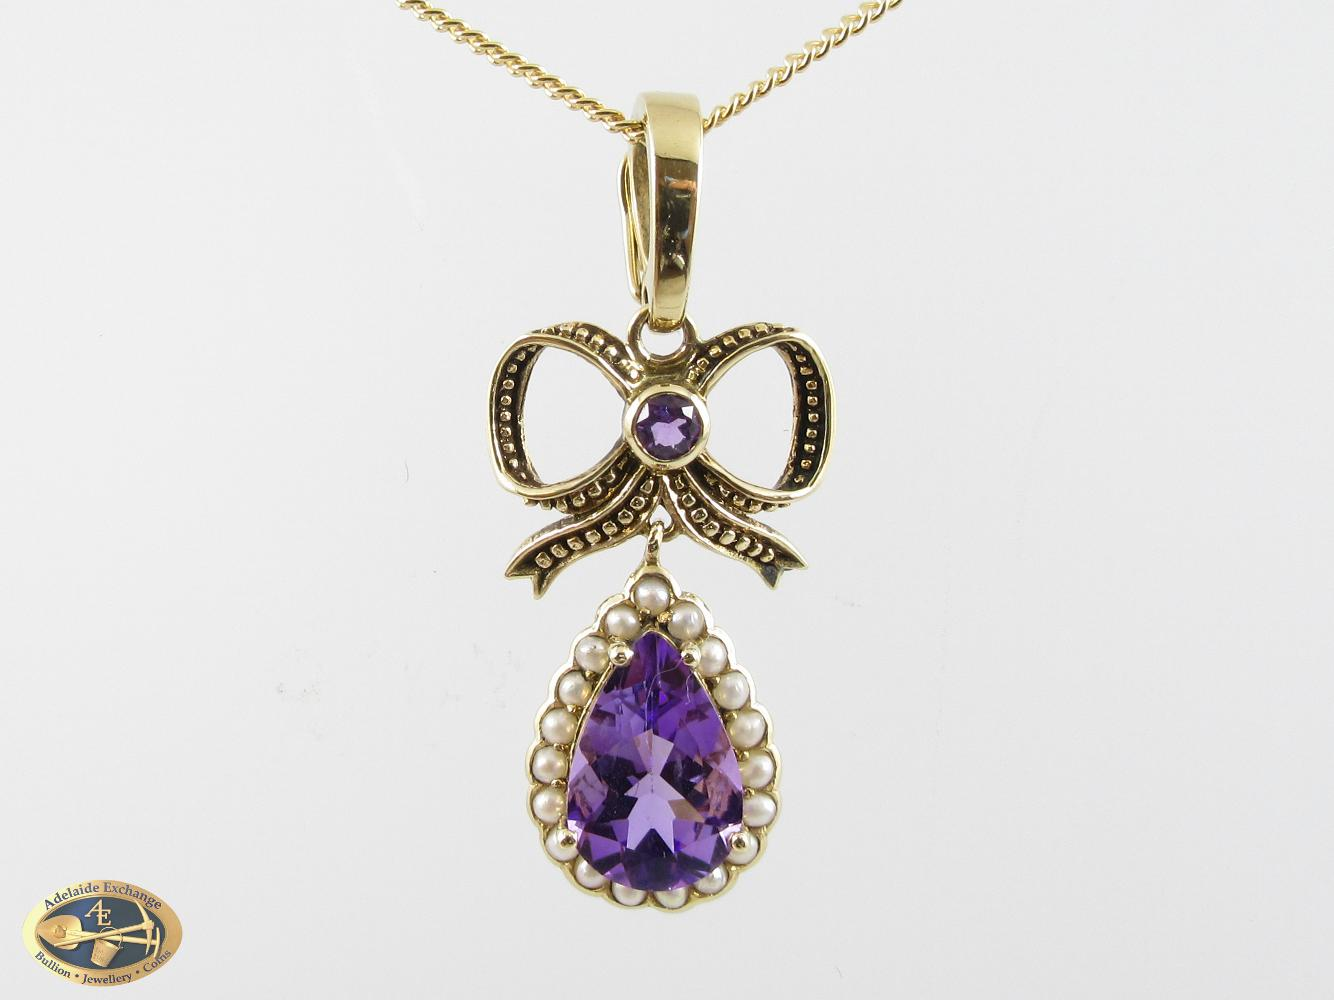 9ct amethyst and seed pearl enhancer pendant adelaide exchange 9ct amethyst and seed pearl enhancer pendant aloadofball Image collections